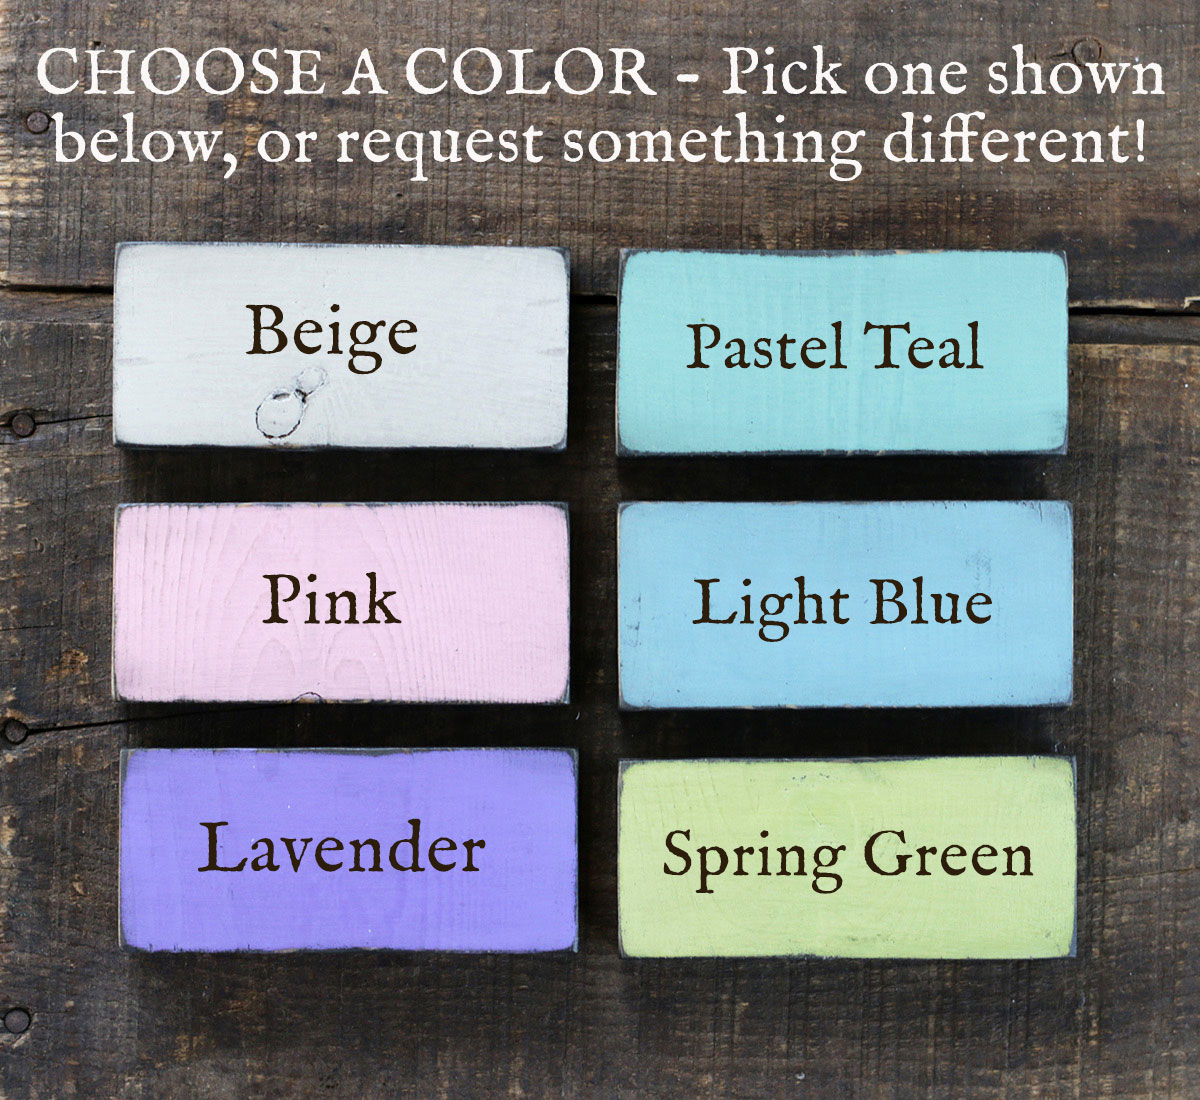 More color options